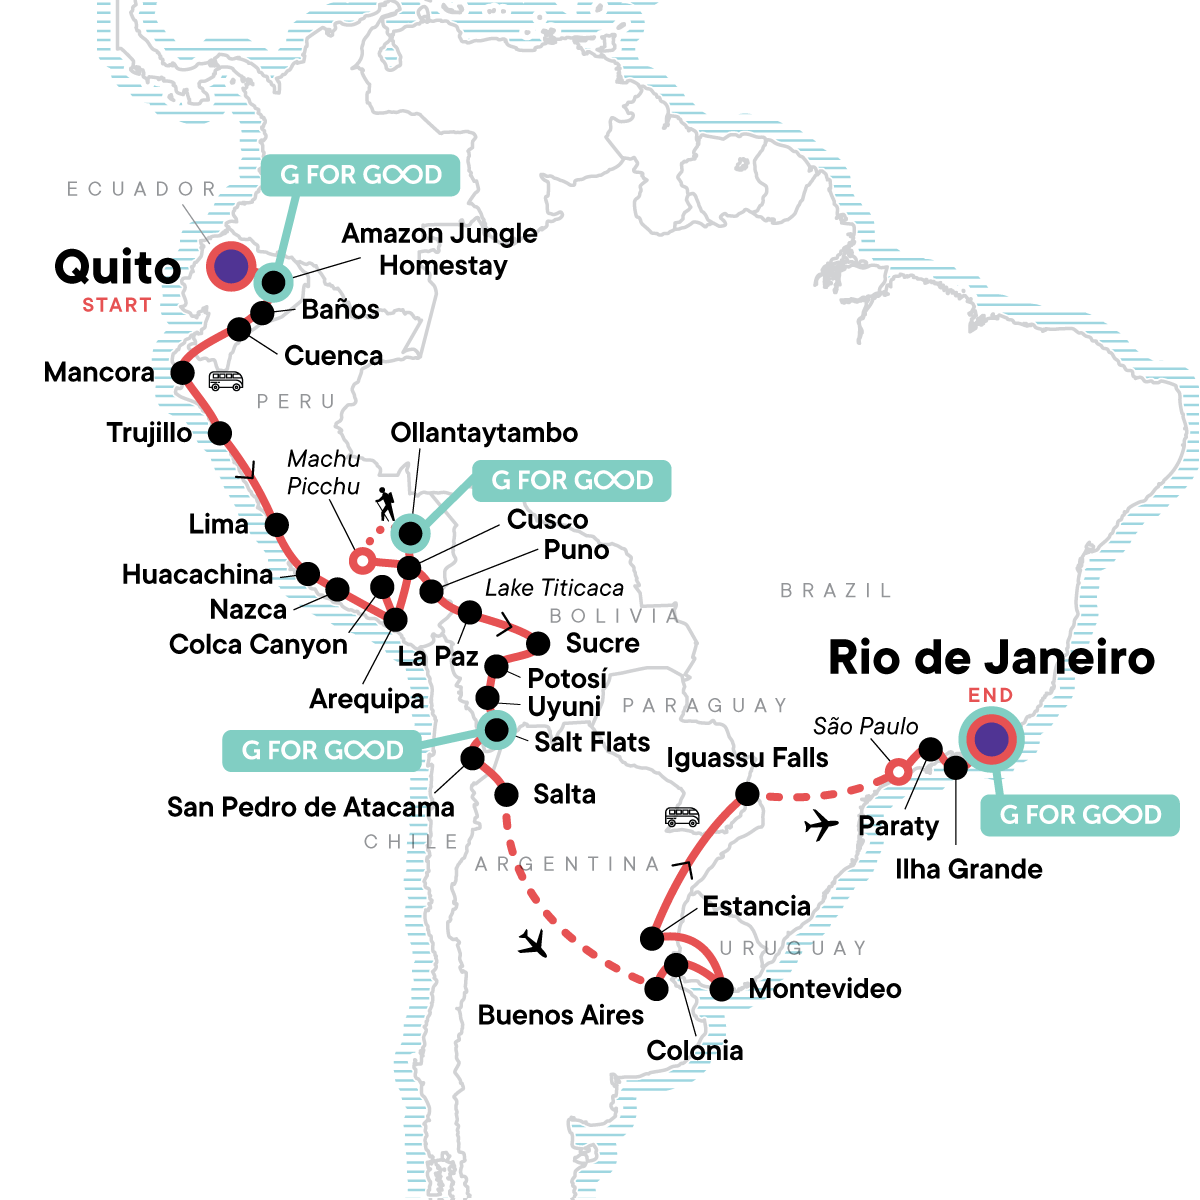 The Great South American Journey: Quito to Rio Adventure Map